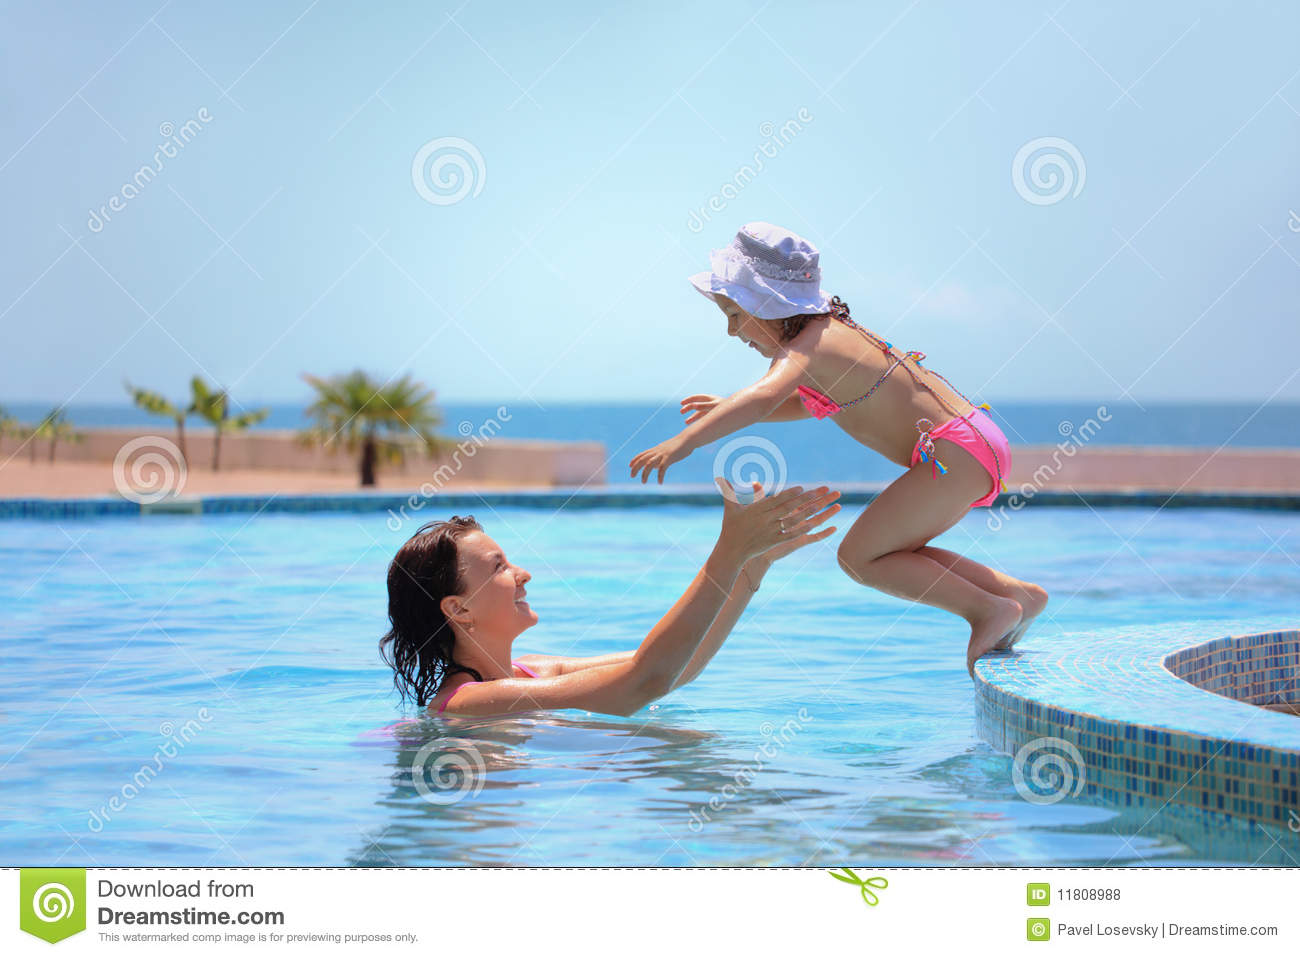 Woman catches girl jumping in pool against sea